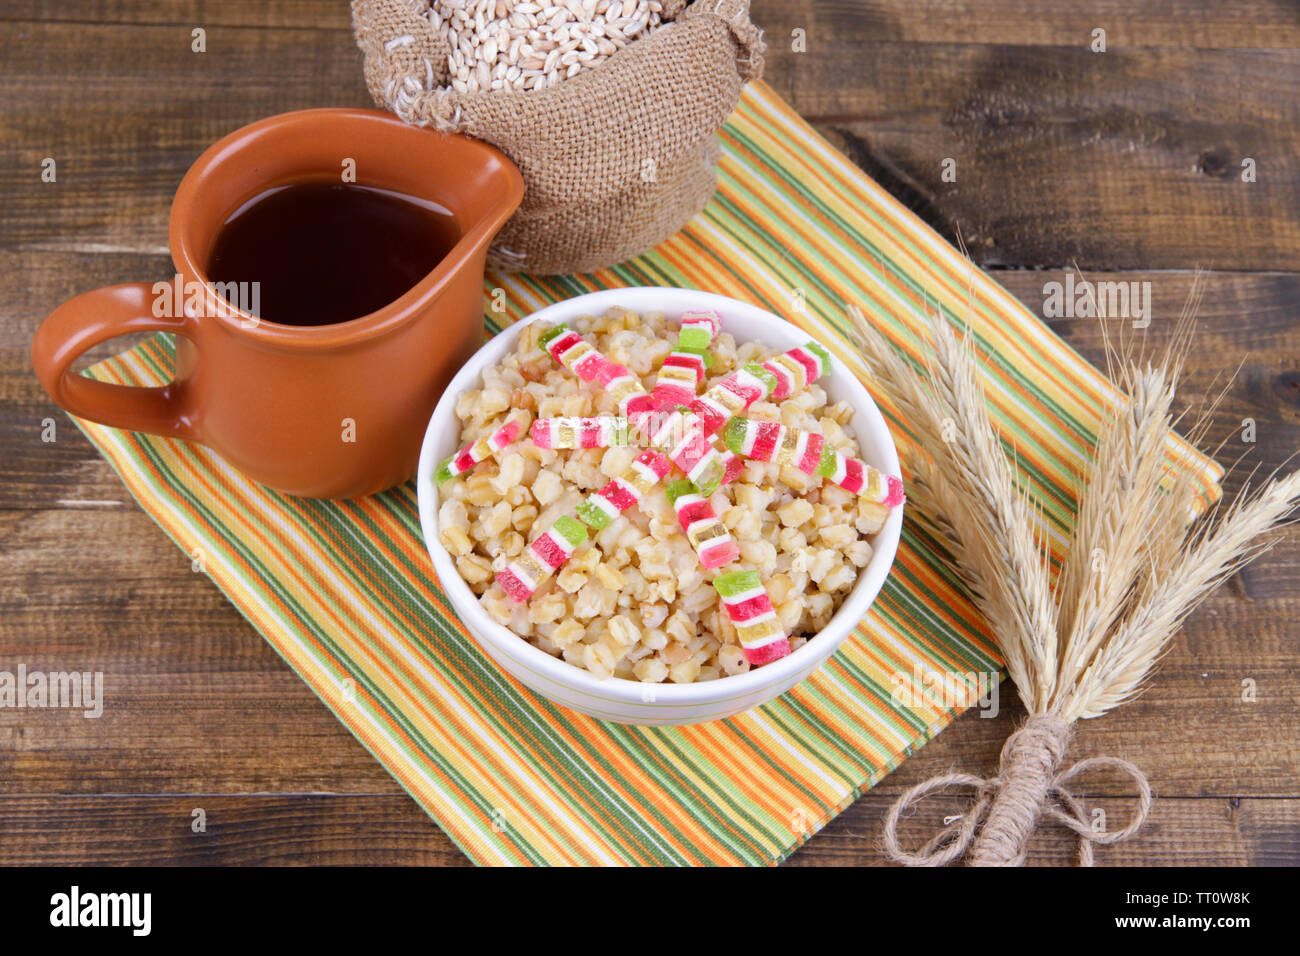 Bowl with kutia -  traditional Christmas sweet meal in Ukraine, Belarus and Poland, on wooden background - Stock Image